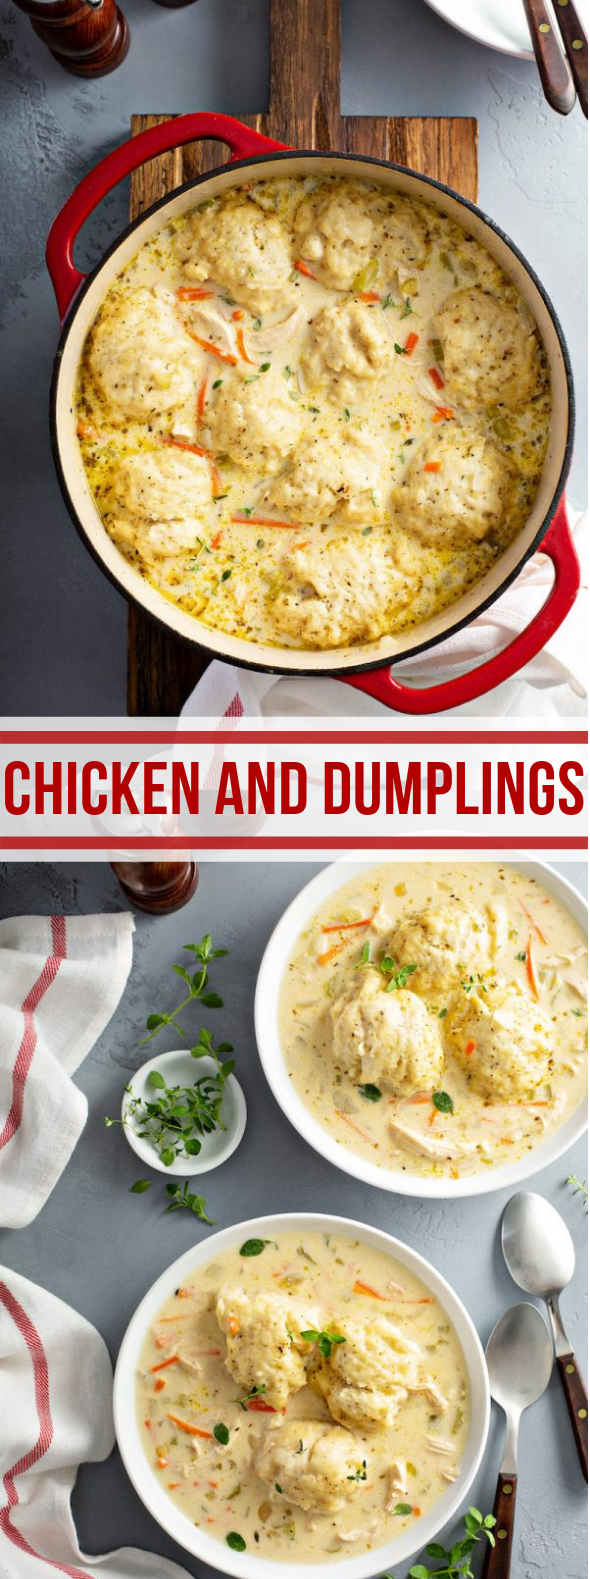 CHICKEN AND DUMPLINGS #familydinner #southernfood